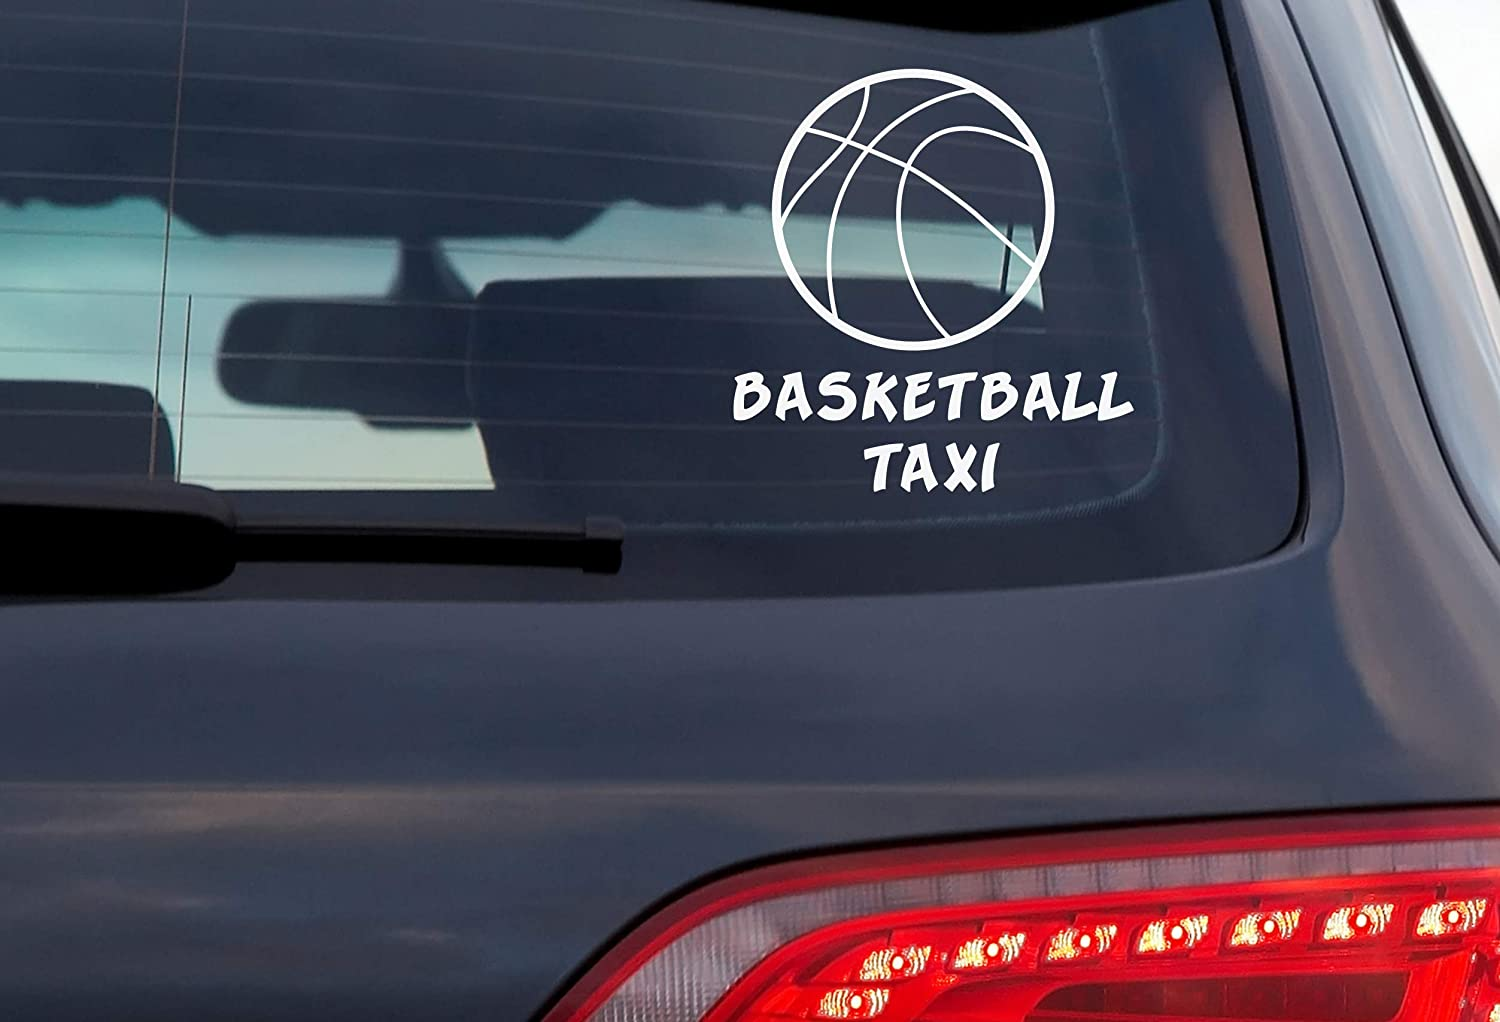 Exterior DOOMSDAYDECALS Basketball Taxi 5 Inch White Vinyl Decal for Car Window